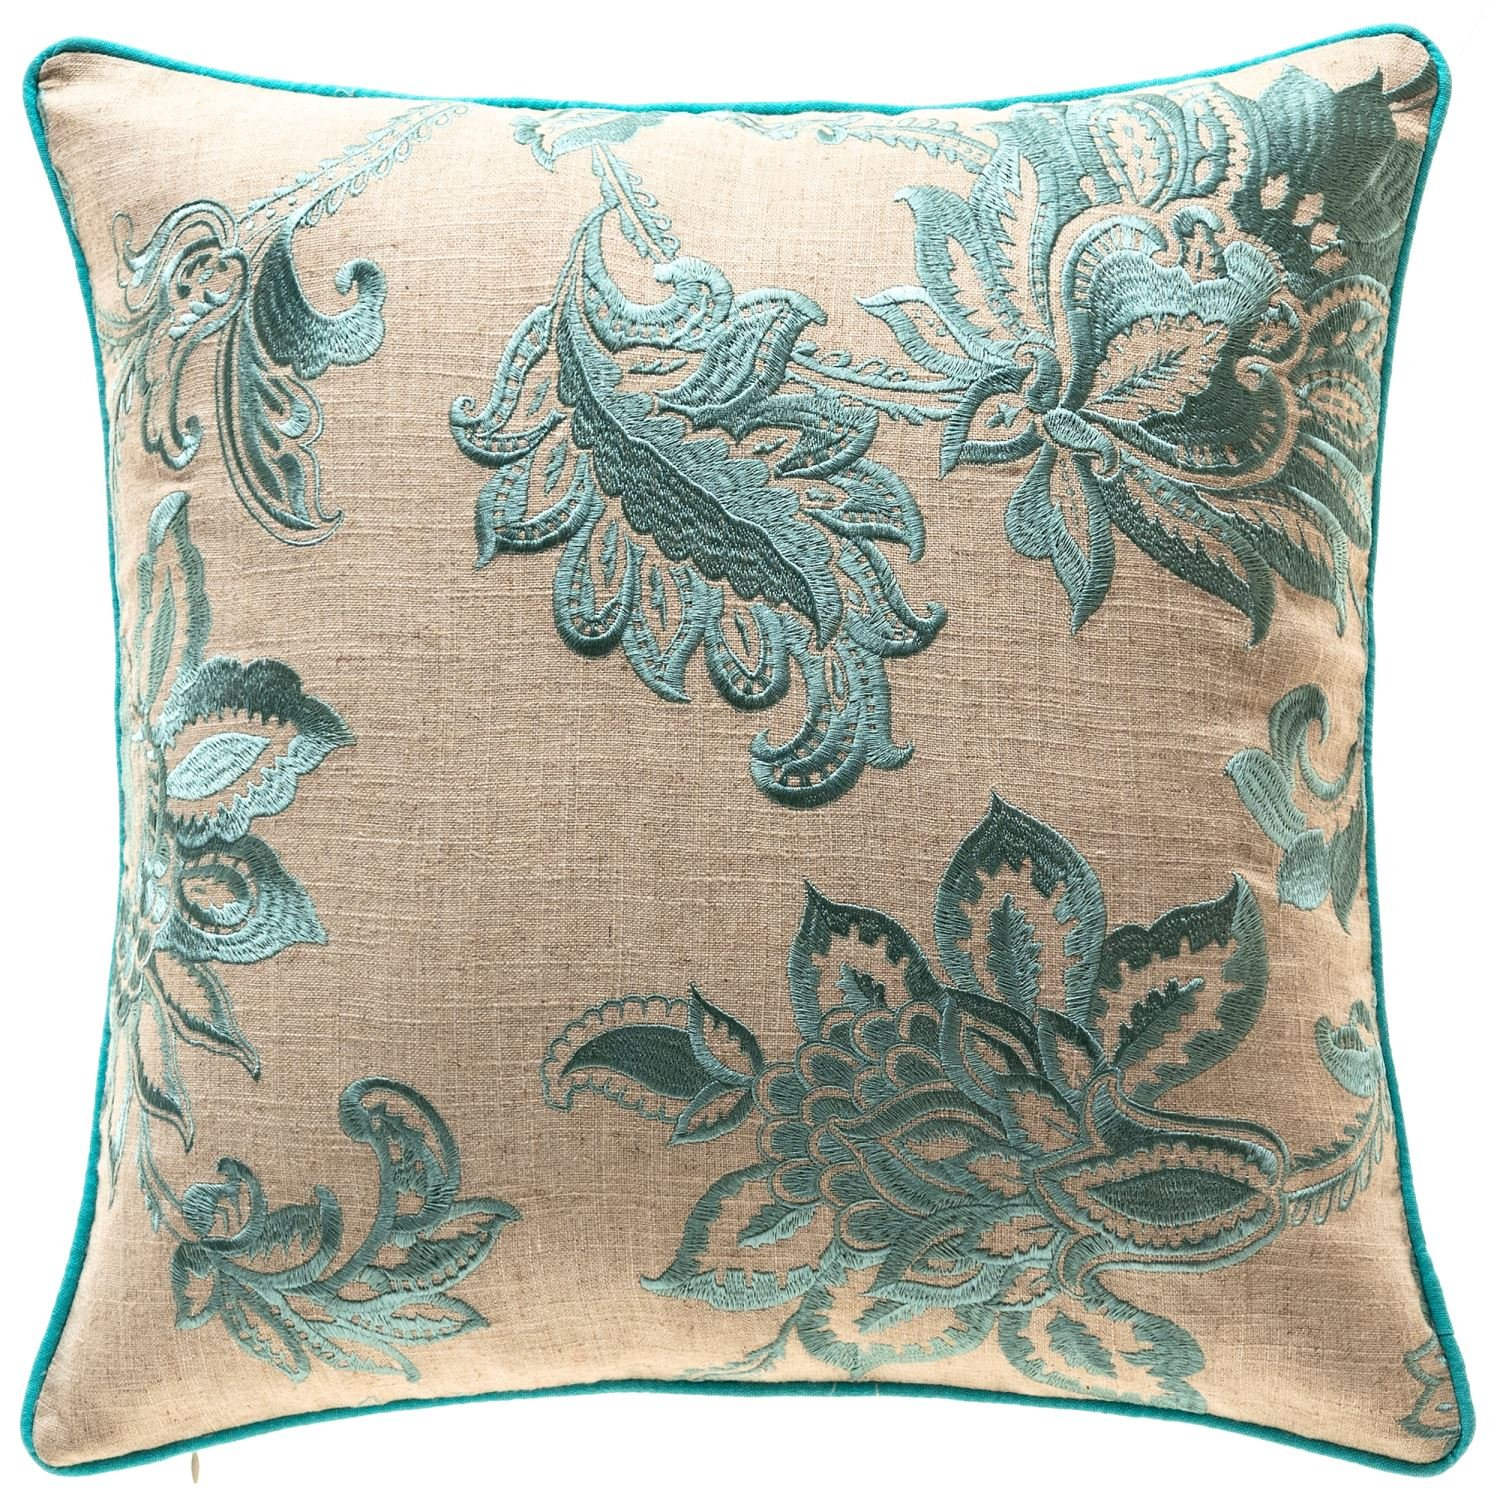 TINA'S HOME French Country Floral Decorative Throw Pillows Down Feather Insert | Embroidery Linen Couch Sofa Bed Home Kitchen Accent Pillows (20 x 20 inches, Teal)